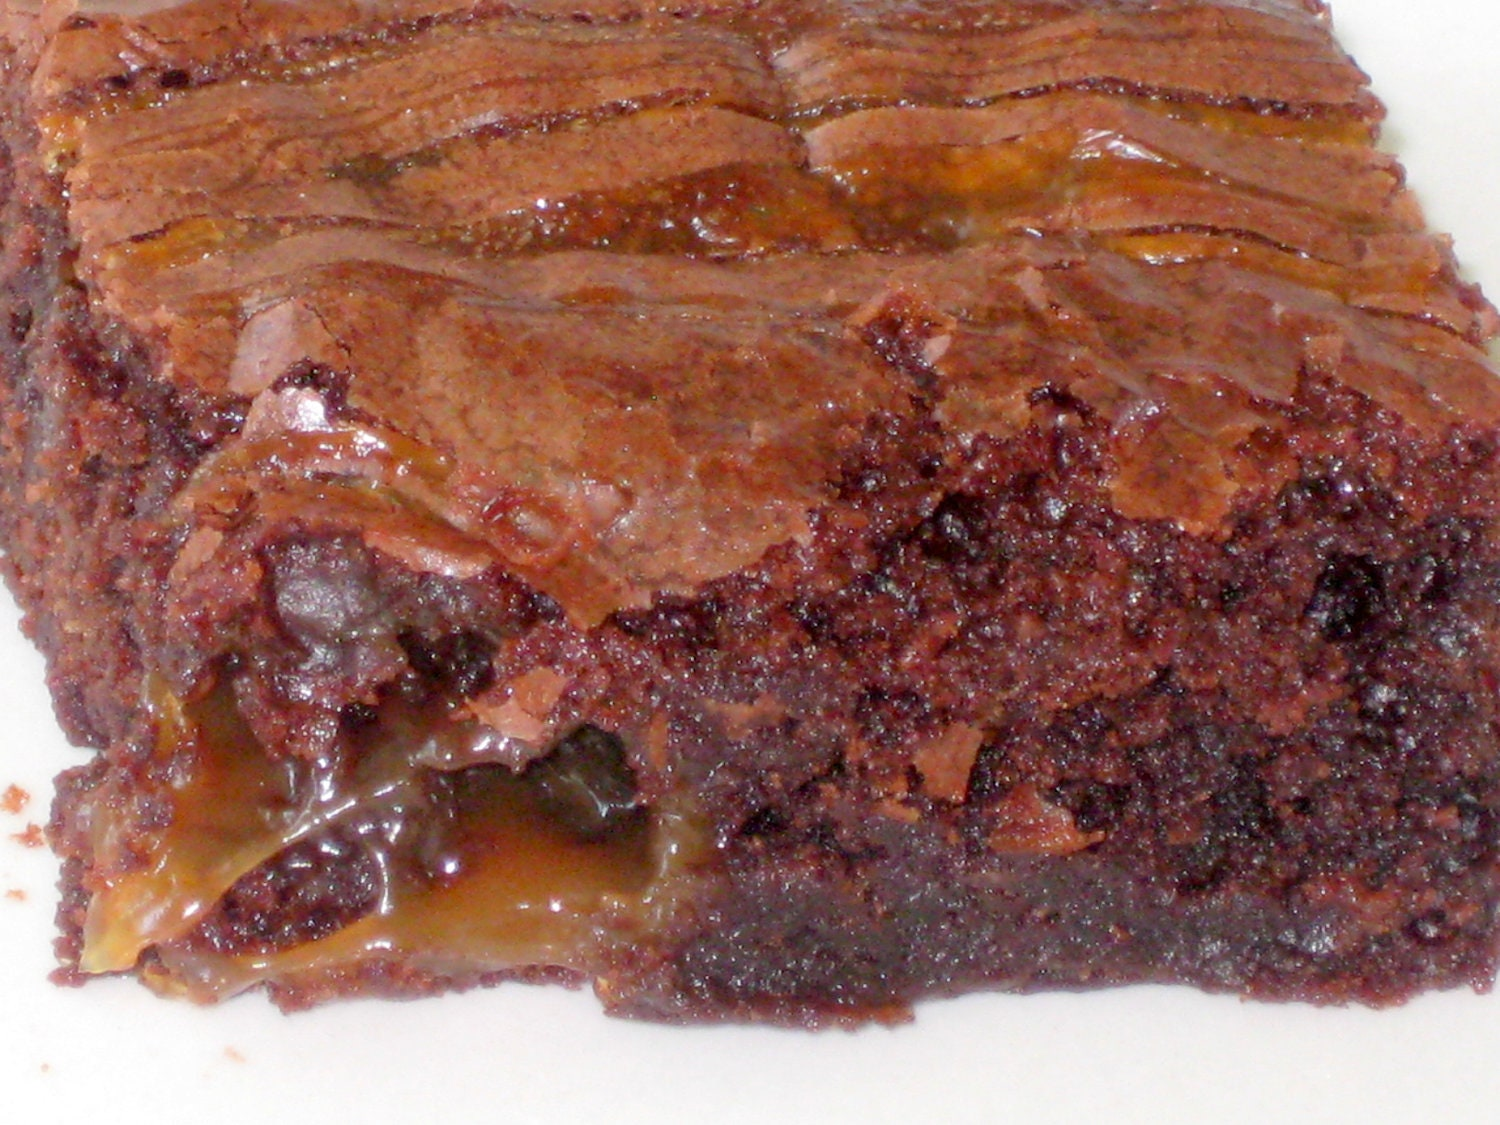 brownies gimme a warm fudgy brownie fudgy salted caramel brownies ...